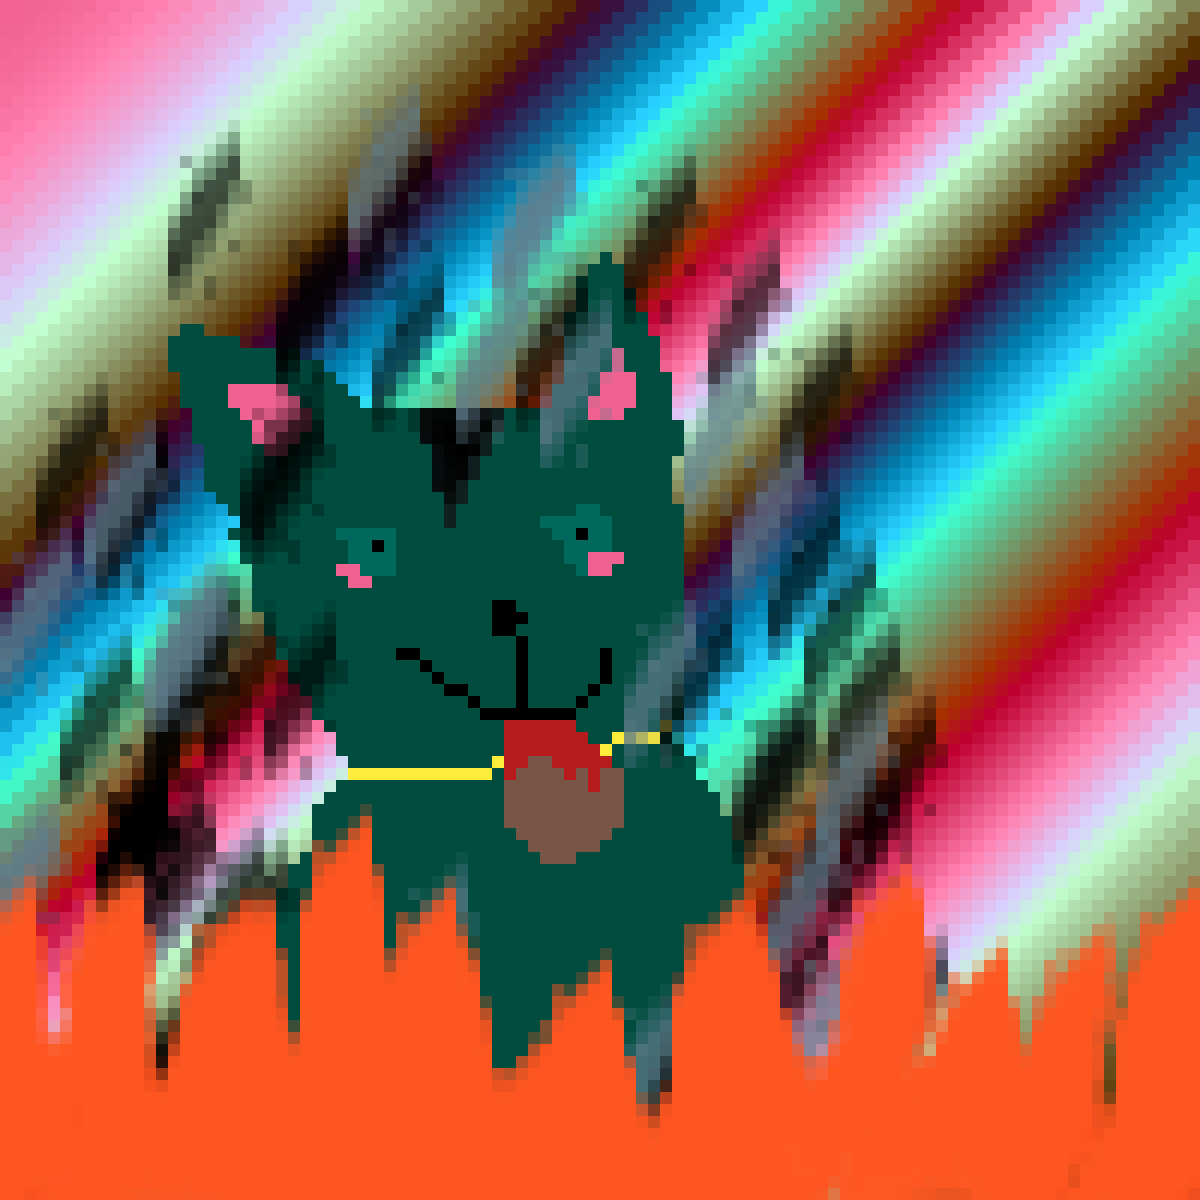 beautiful burning cat eating a meatball by JinForTheWin